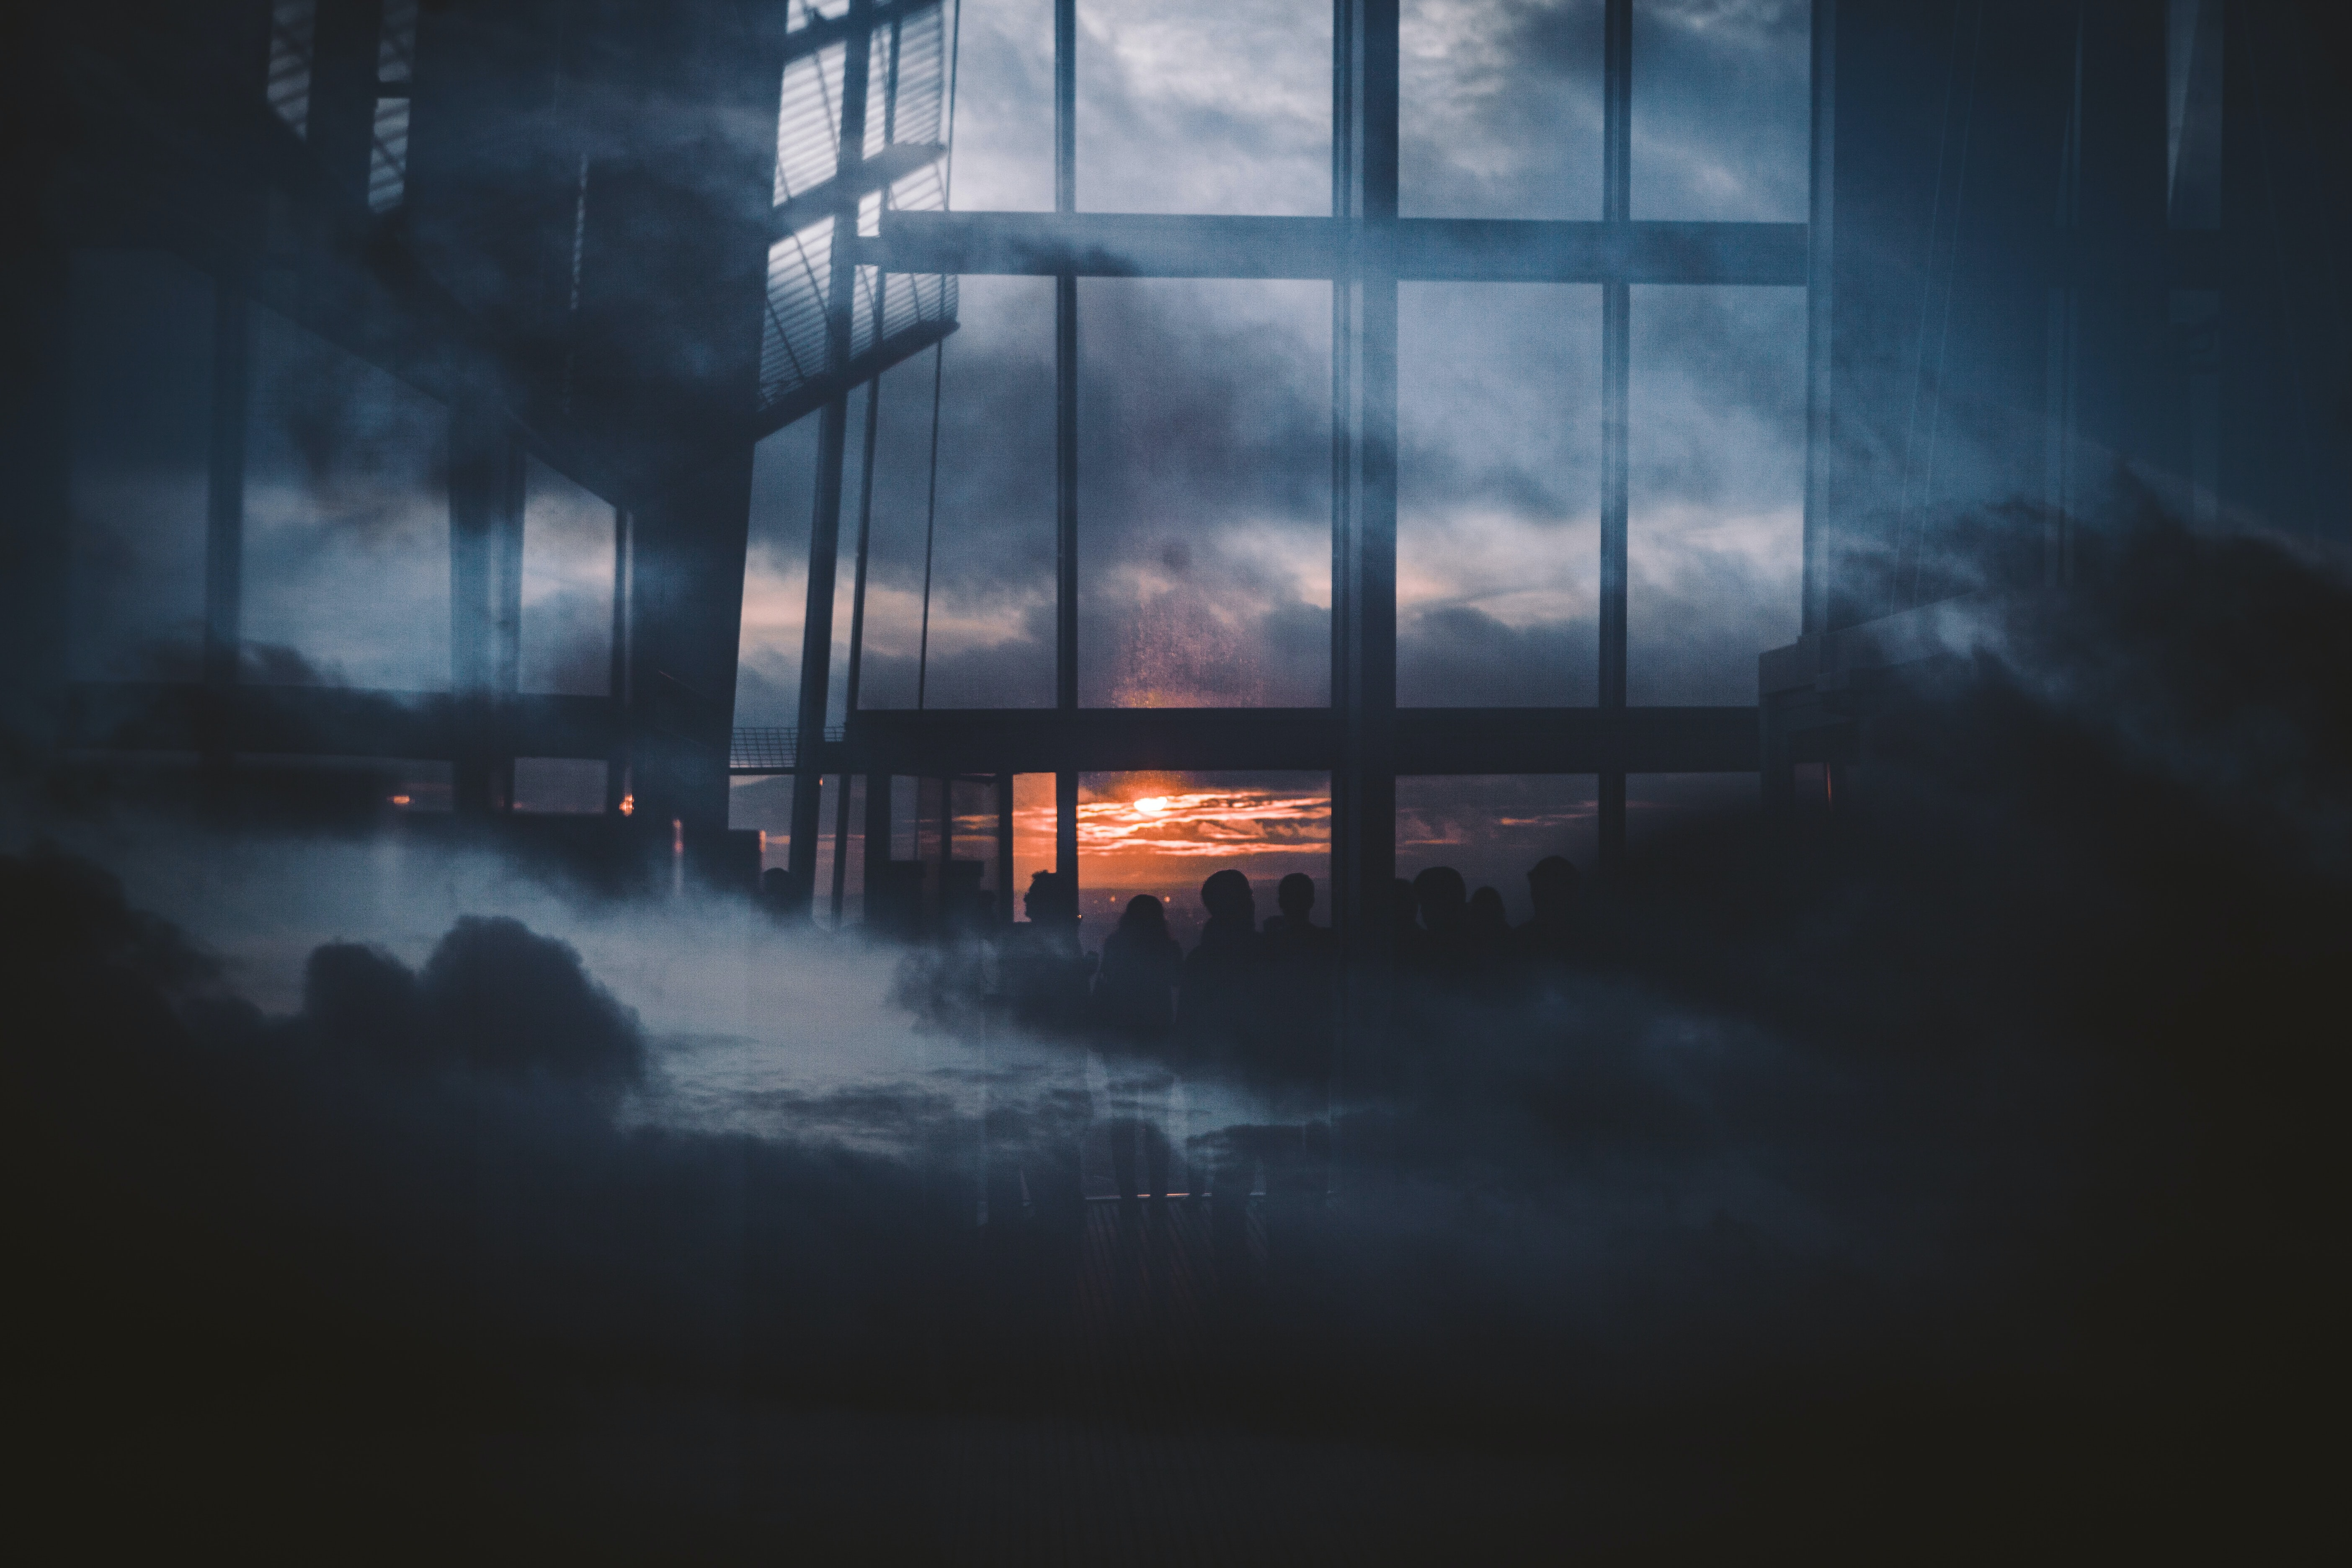 silhouette photography of people standing inside building